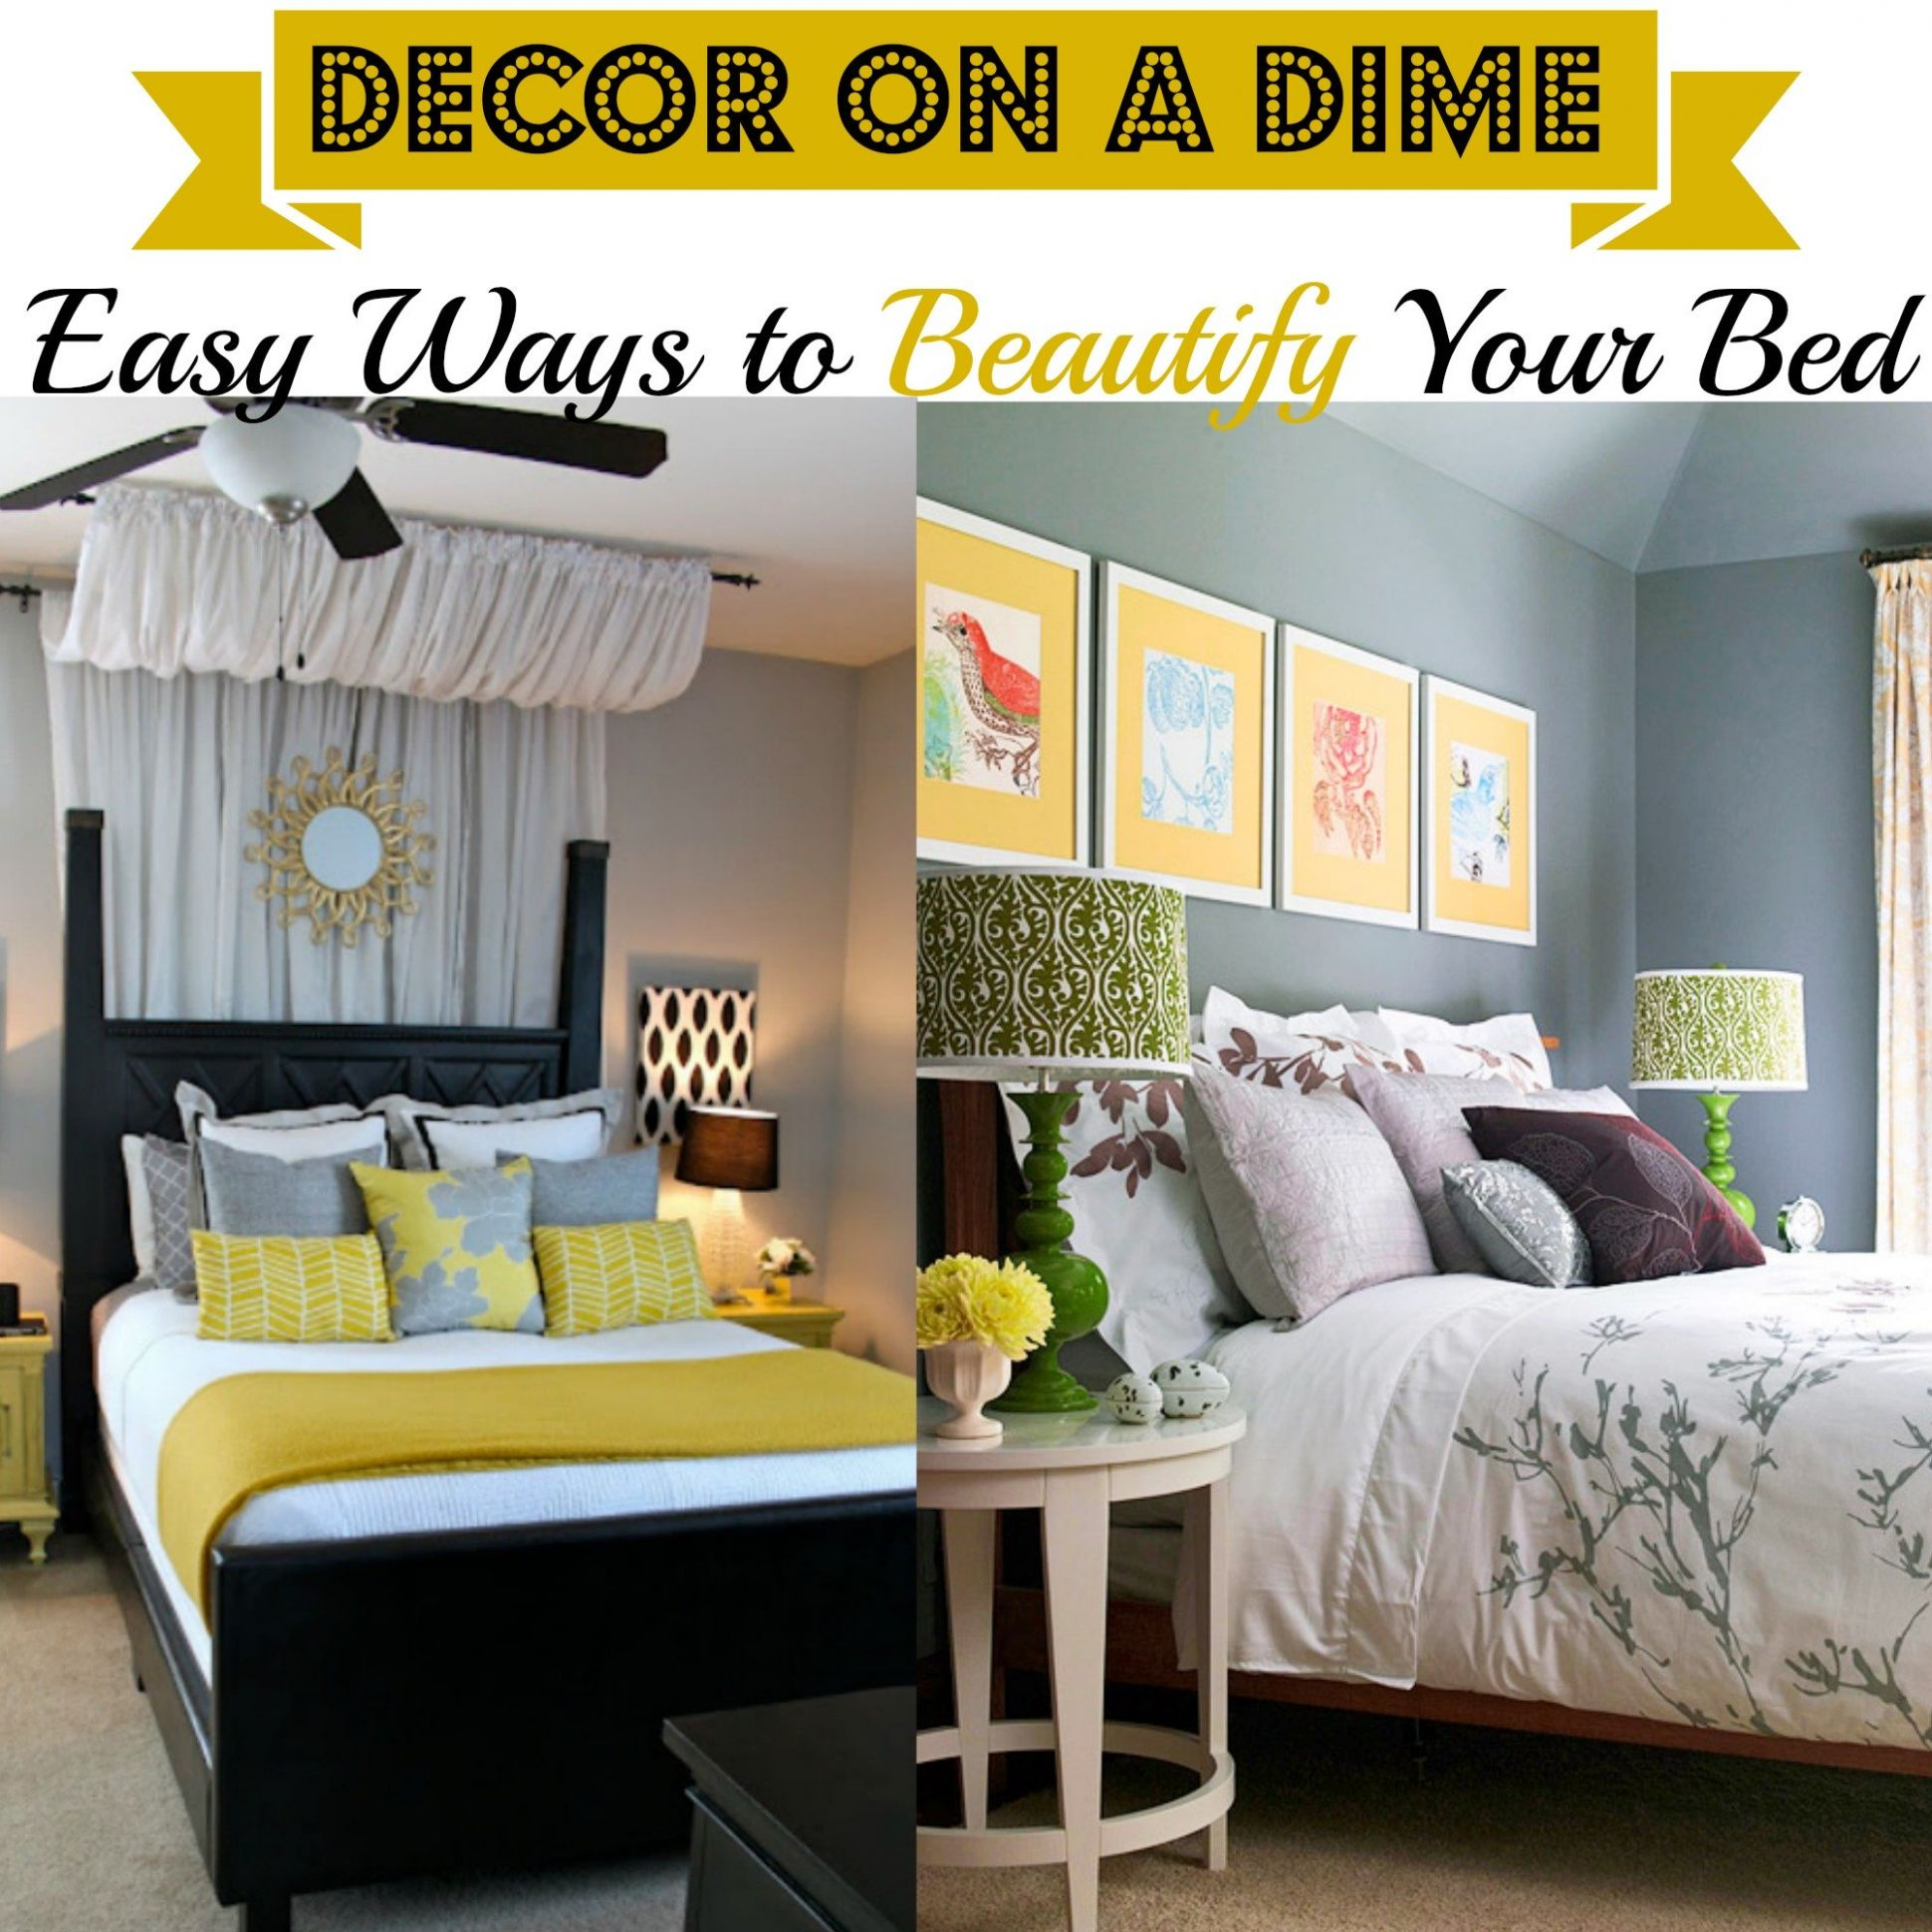 Decor on a Dime: Steps to Create a Zen Bedroom | Looking Fly on a Dime - zen bedroom ideas on a budget